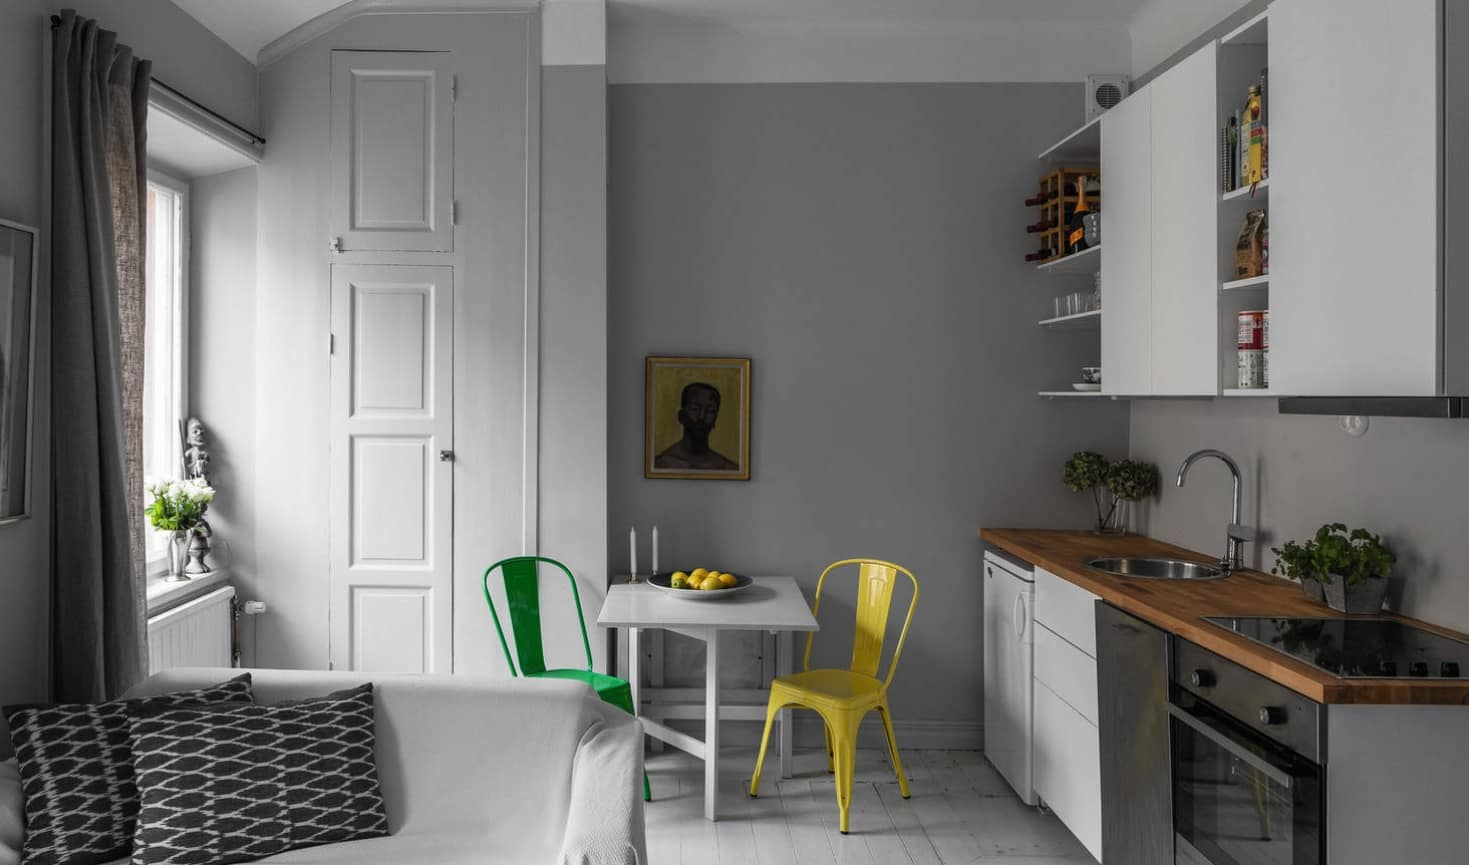 Tiny Home Interiors that Can Inspire Making Your Space more Functional. Green and yellow chairs in casual white/grey colore dinterior of the common open layout room